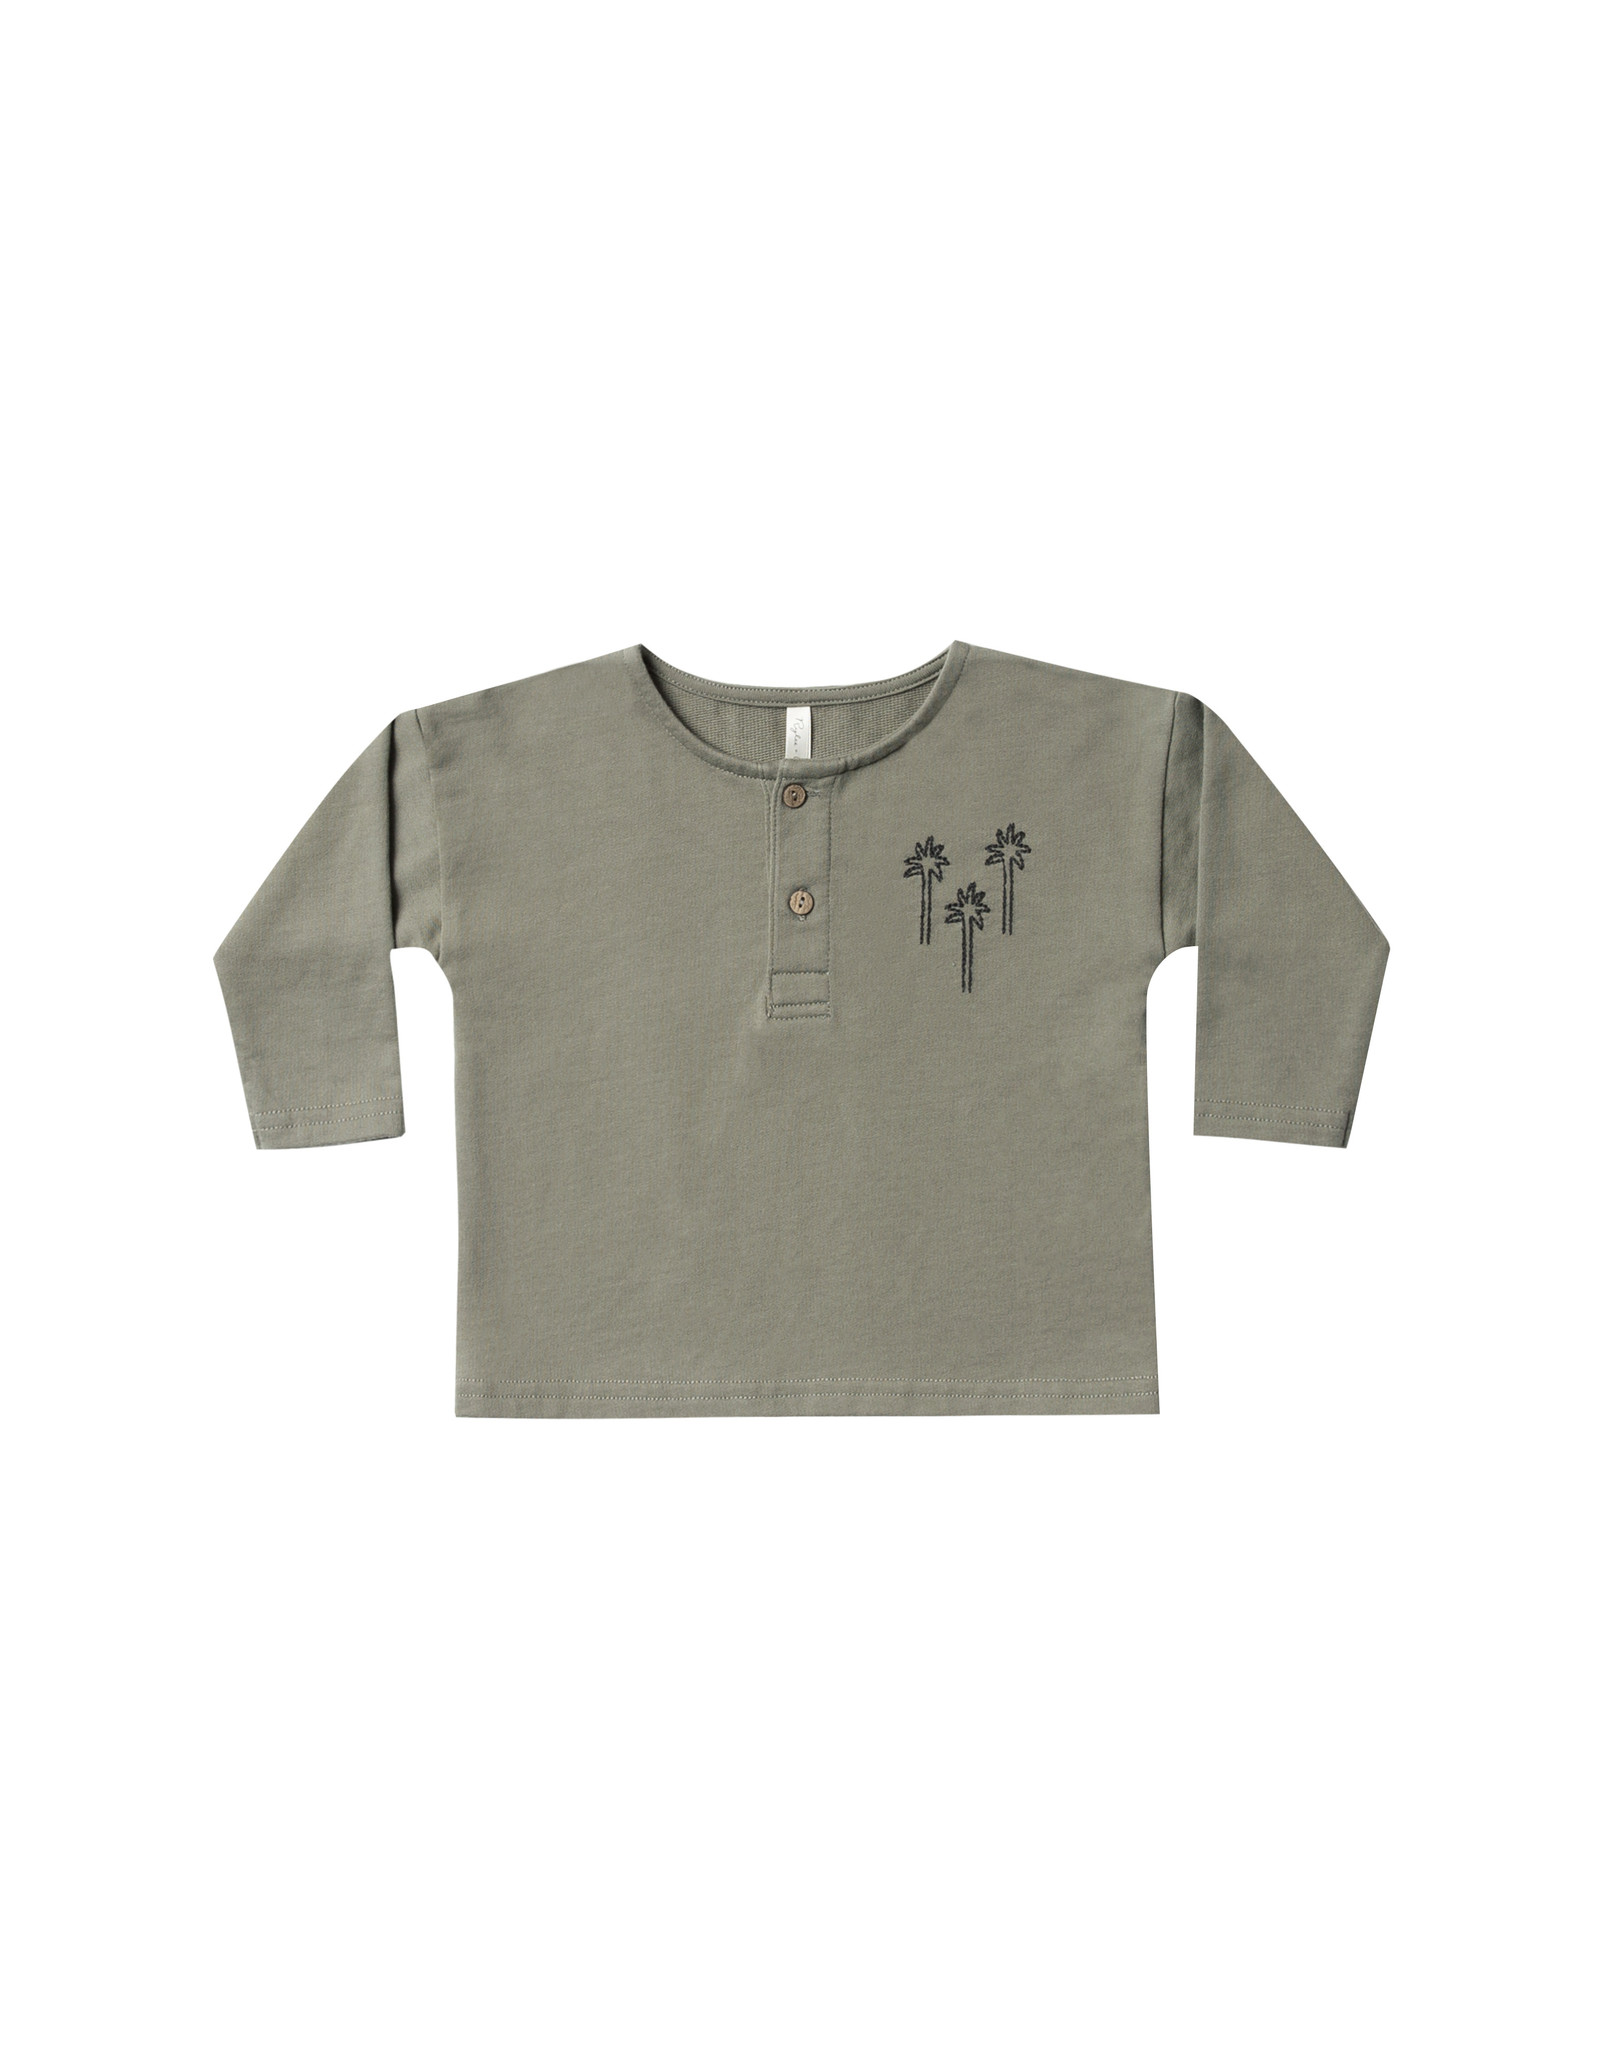 Rylee + Cru PALM TREE HENLEY SWEATSHIRT